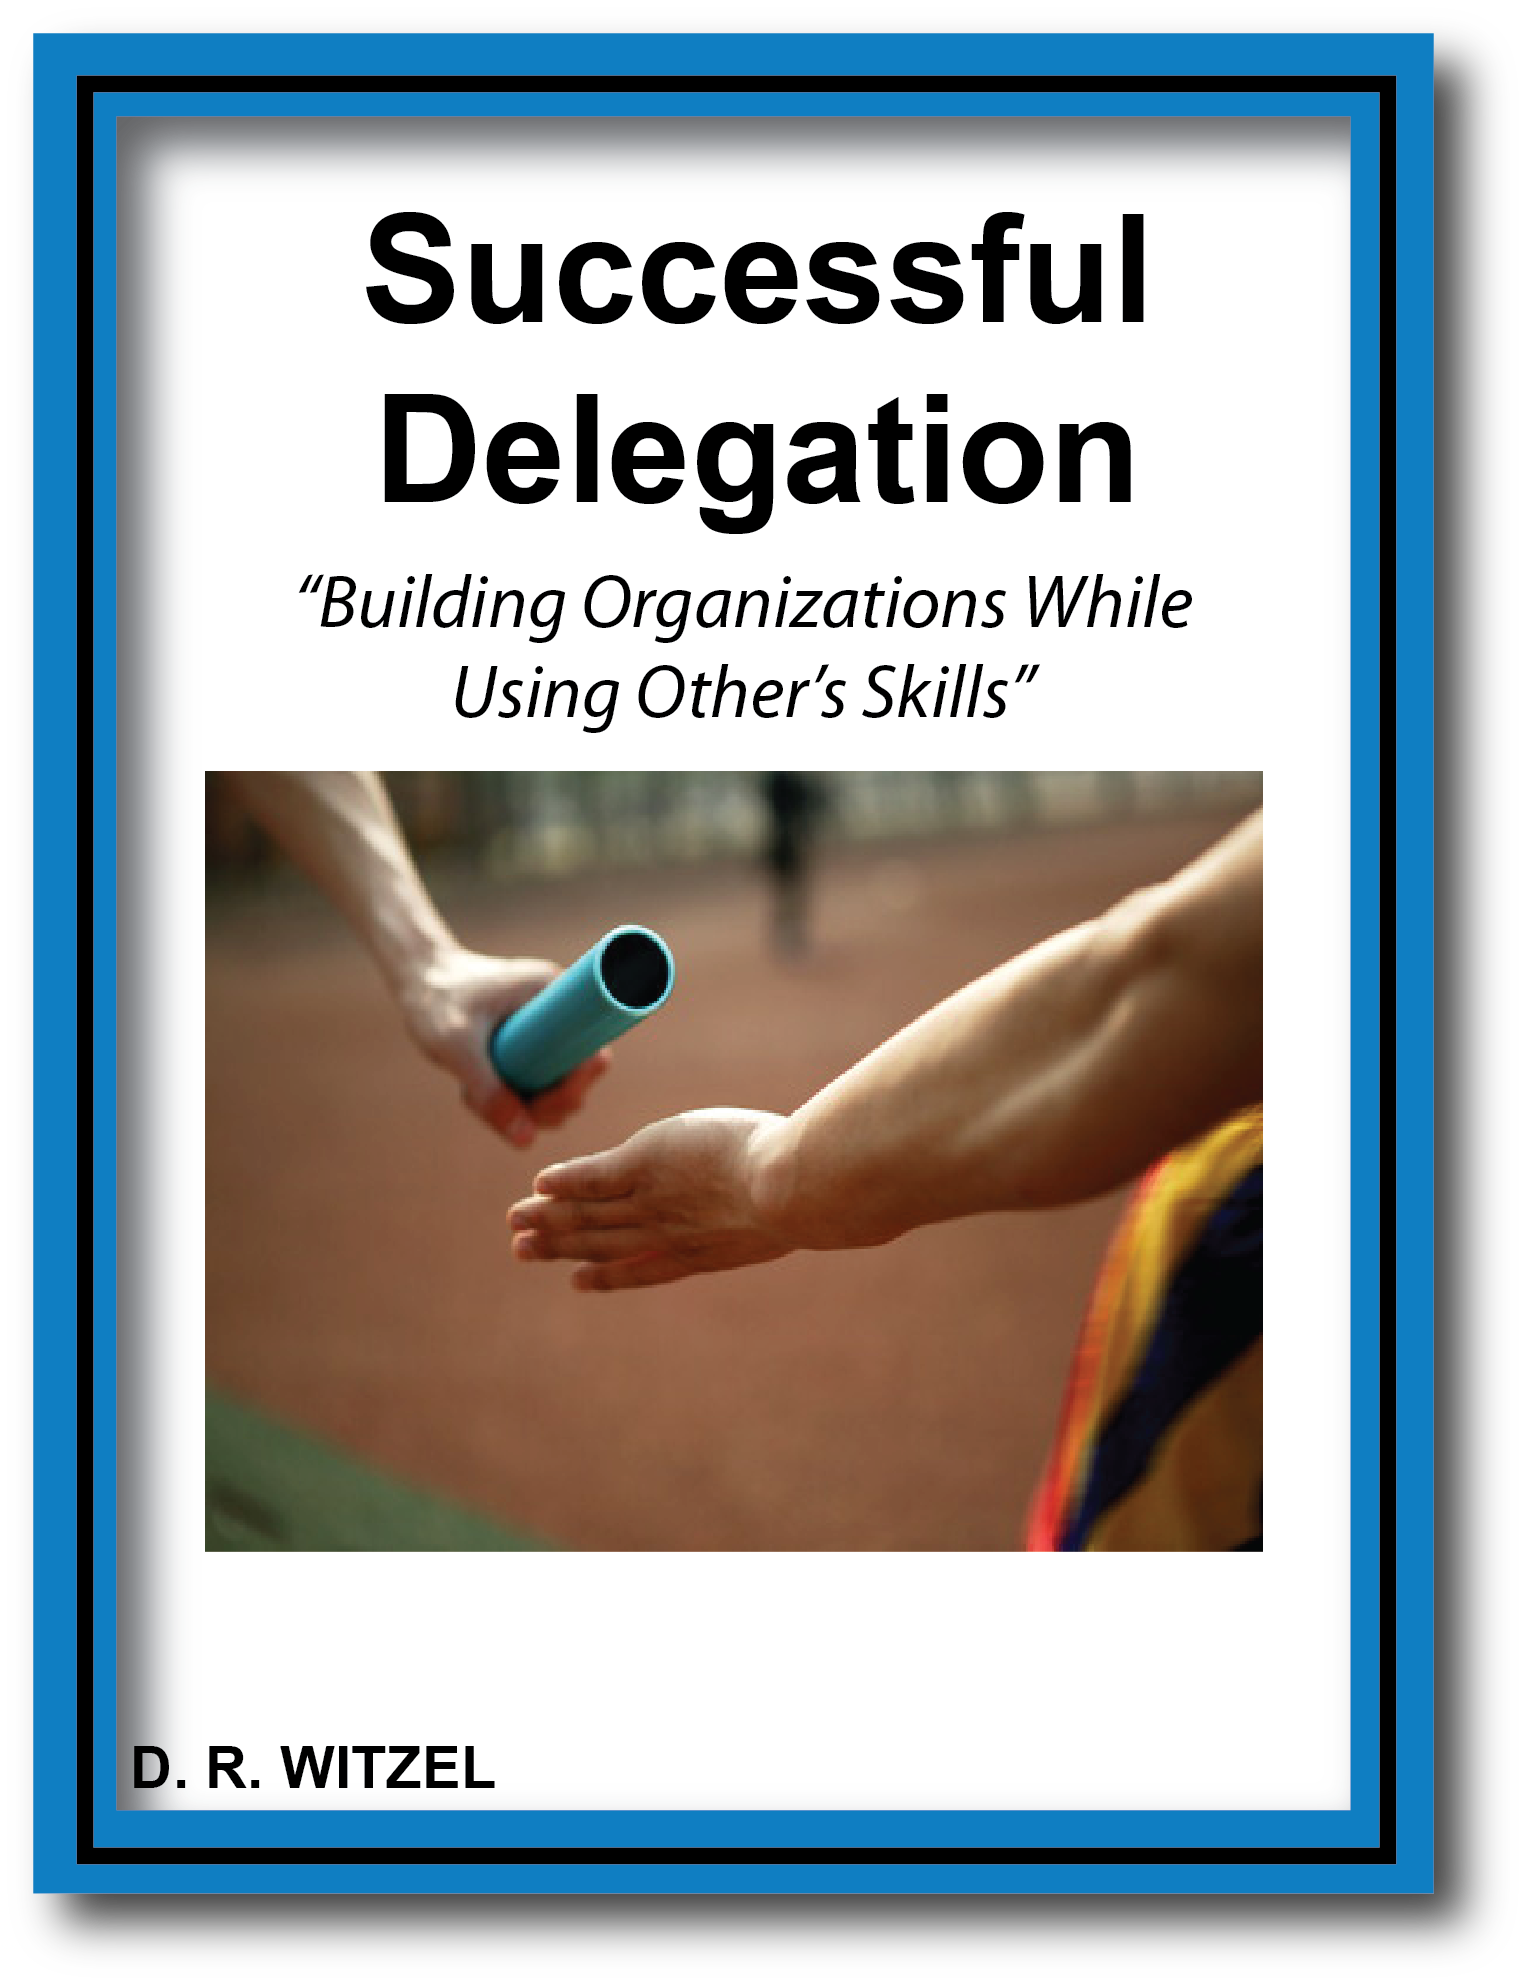 delegation vs empowerment essay Delegation and empowerment is a critical facet to every leader this guide provides advice on how to effectively empoer and develop your teams.